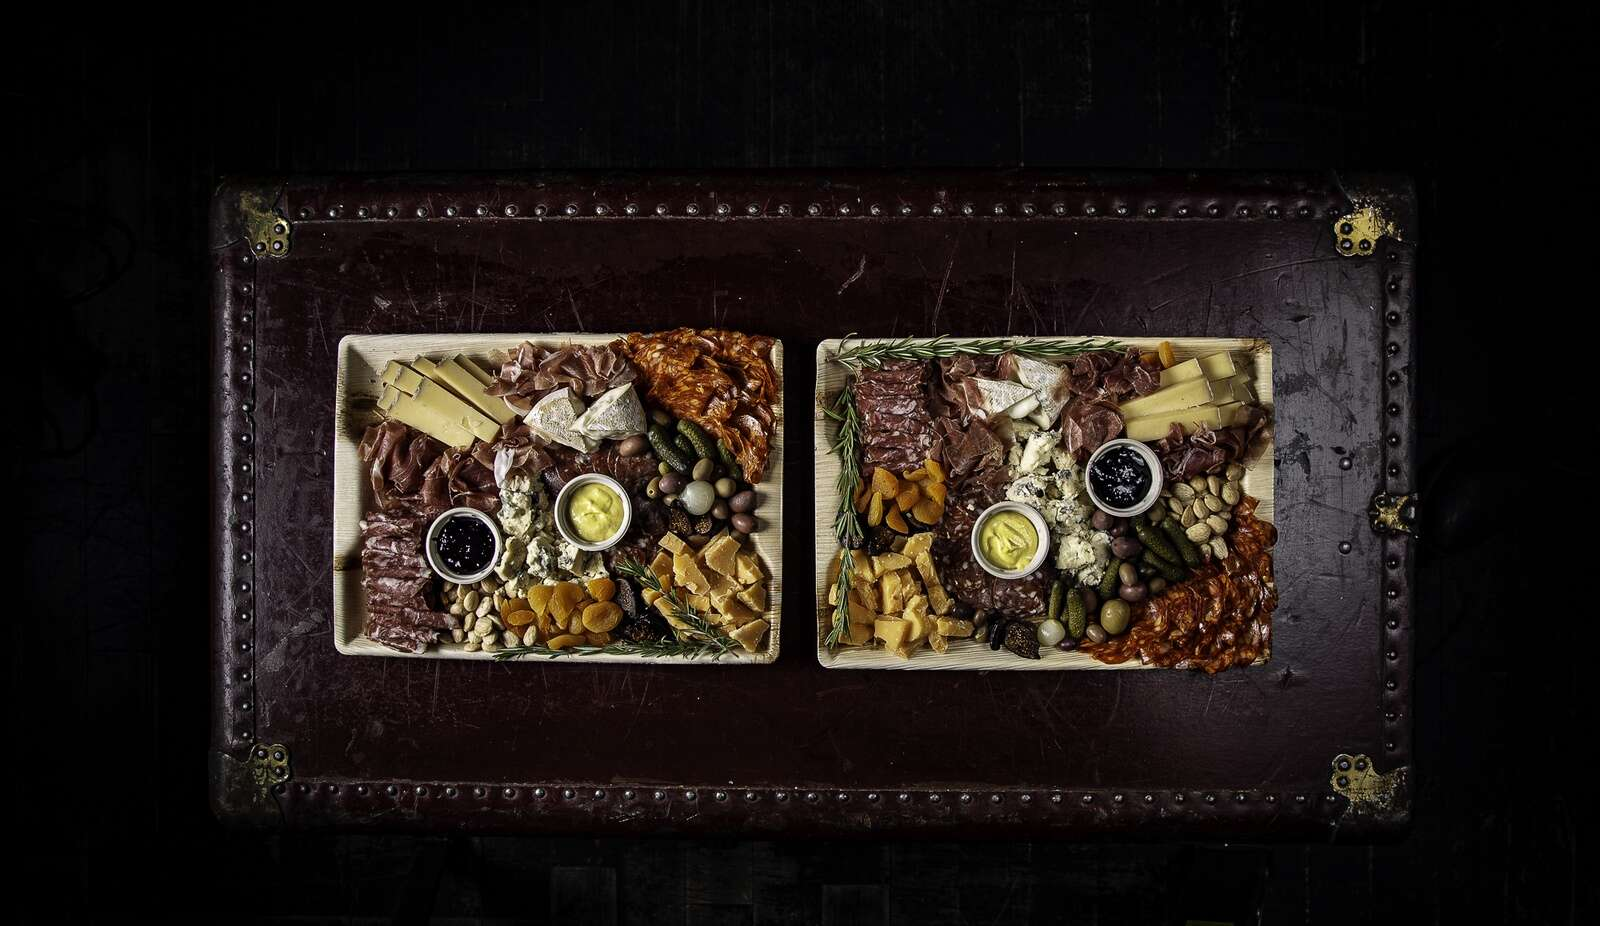 Custom charcuterie creations from Meat & Cheese Farm Shop in Aspen.